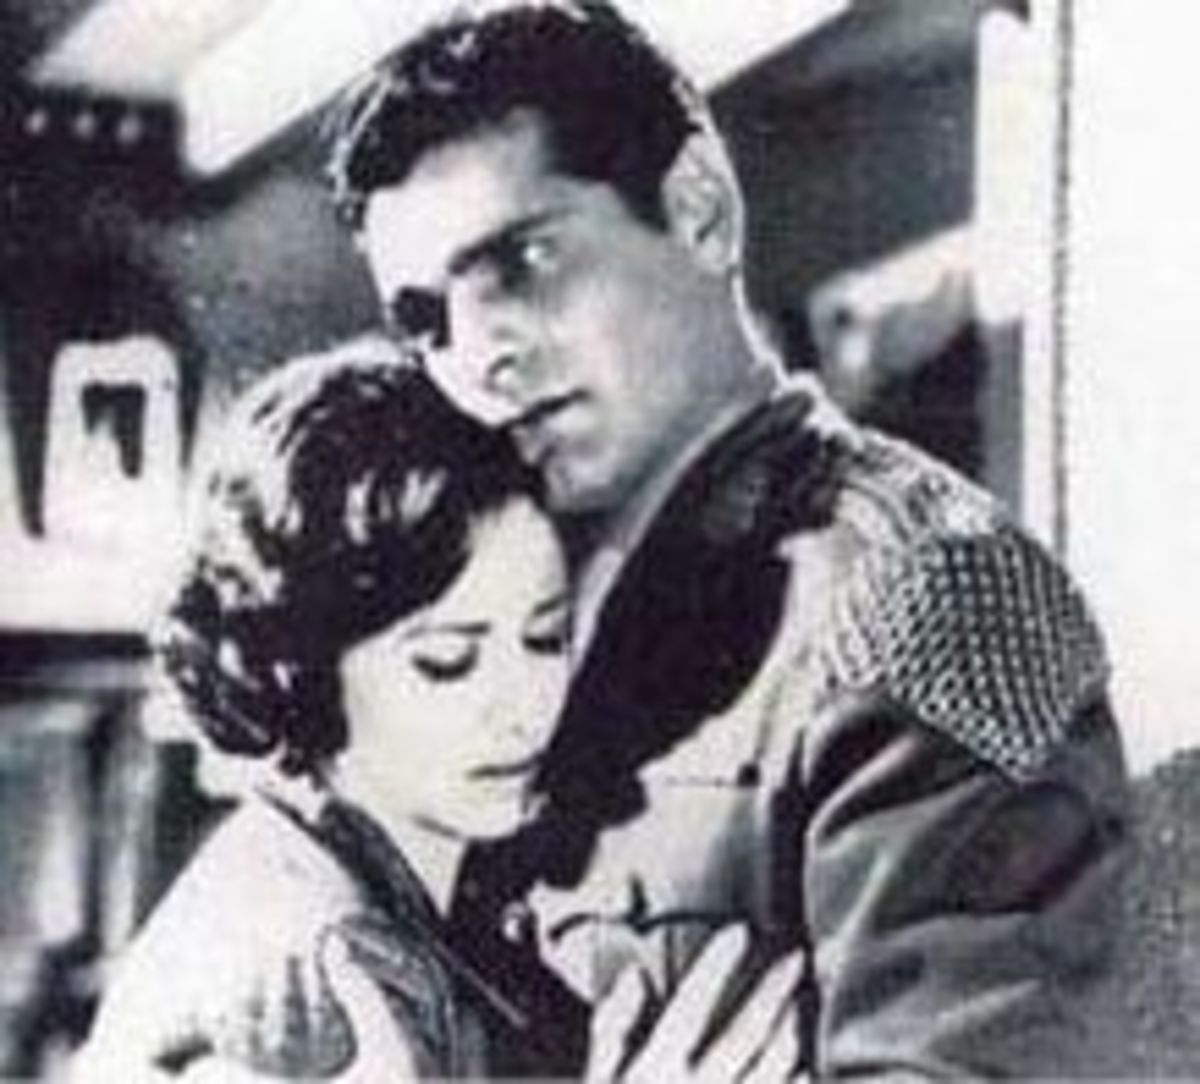 Faten Hamama and Omar Sharif in Nahr al-hob